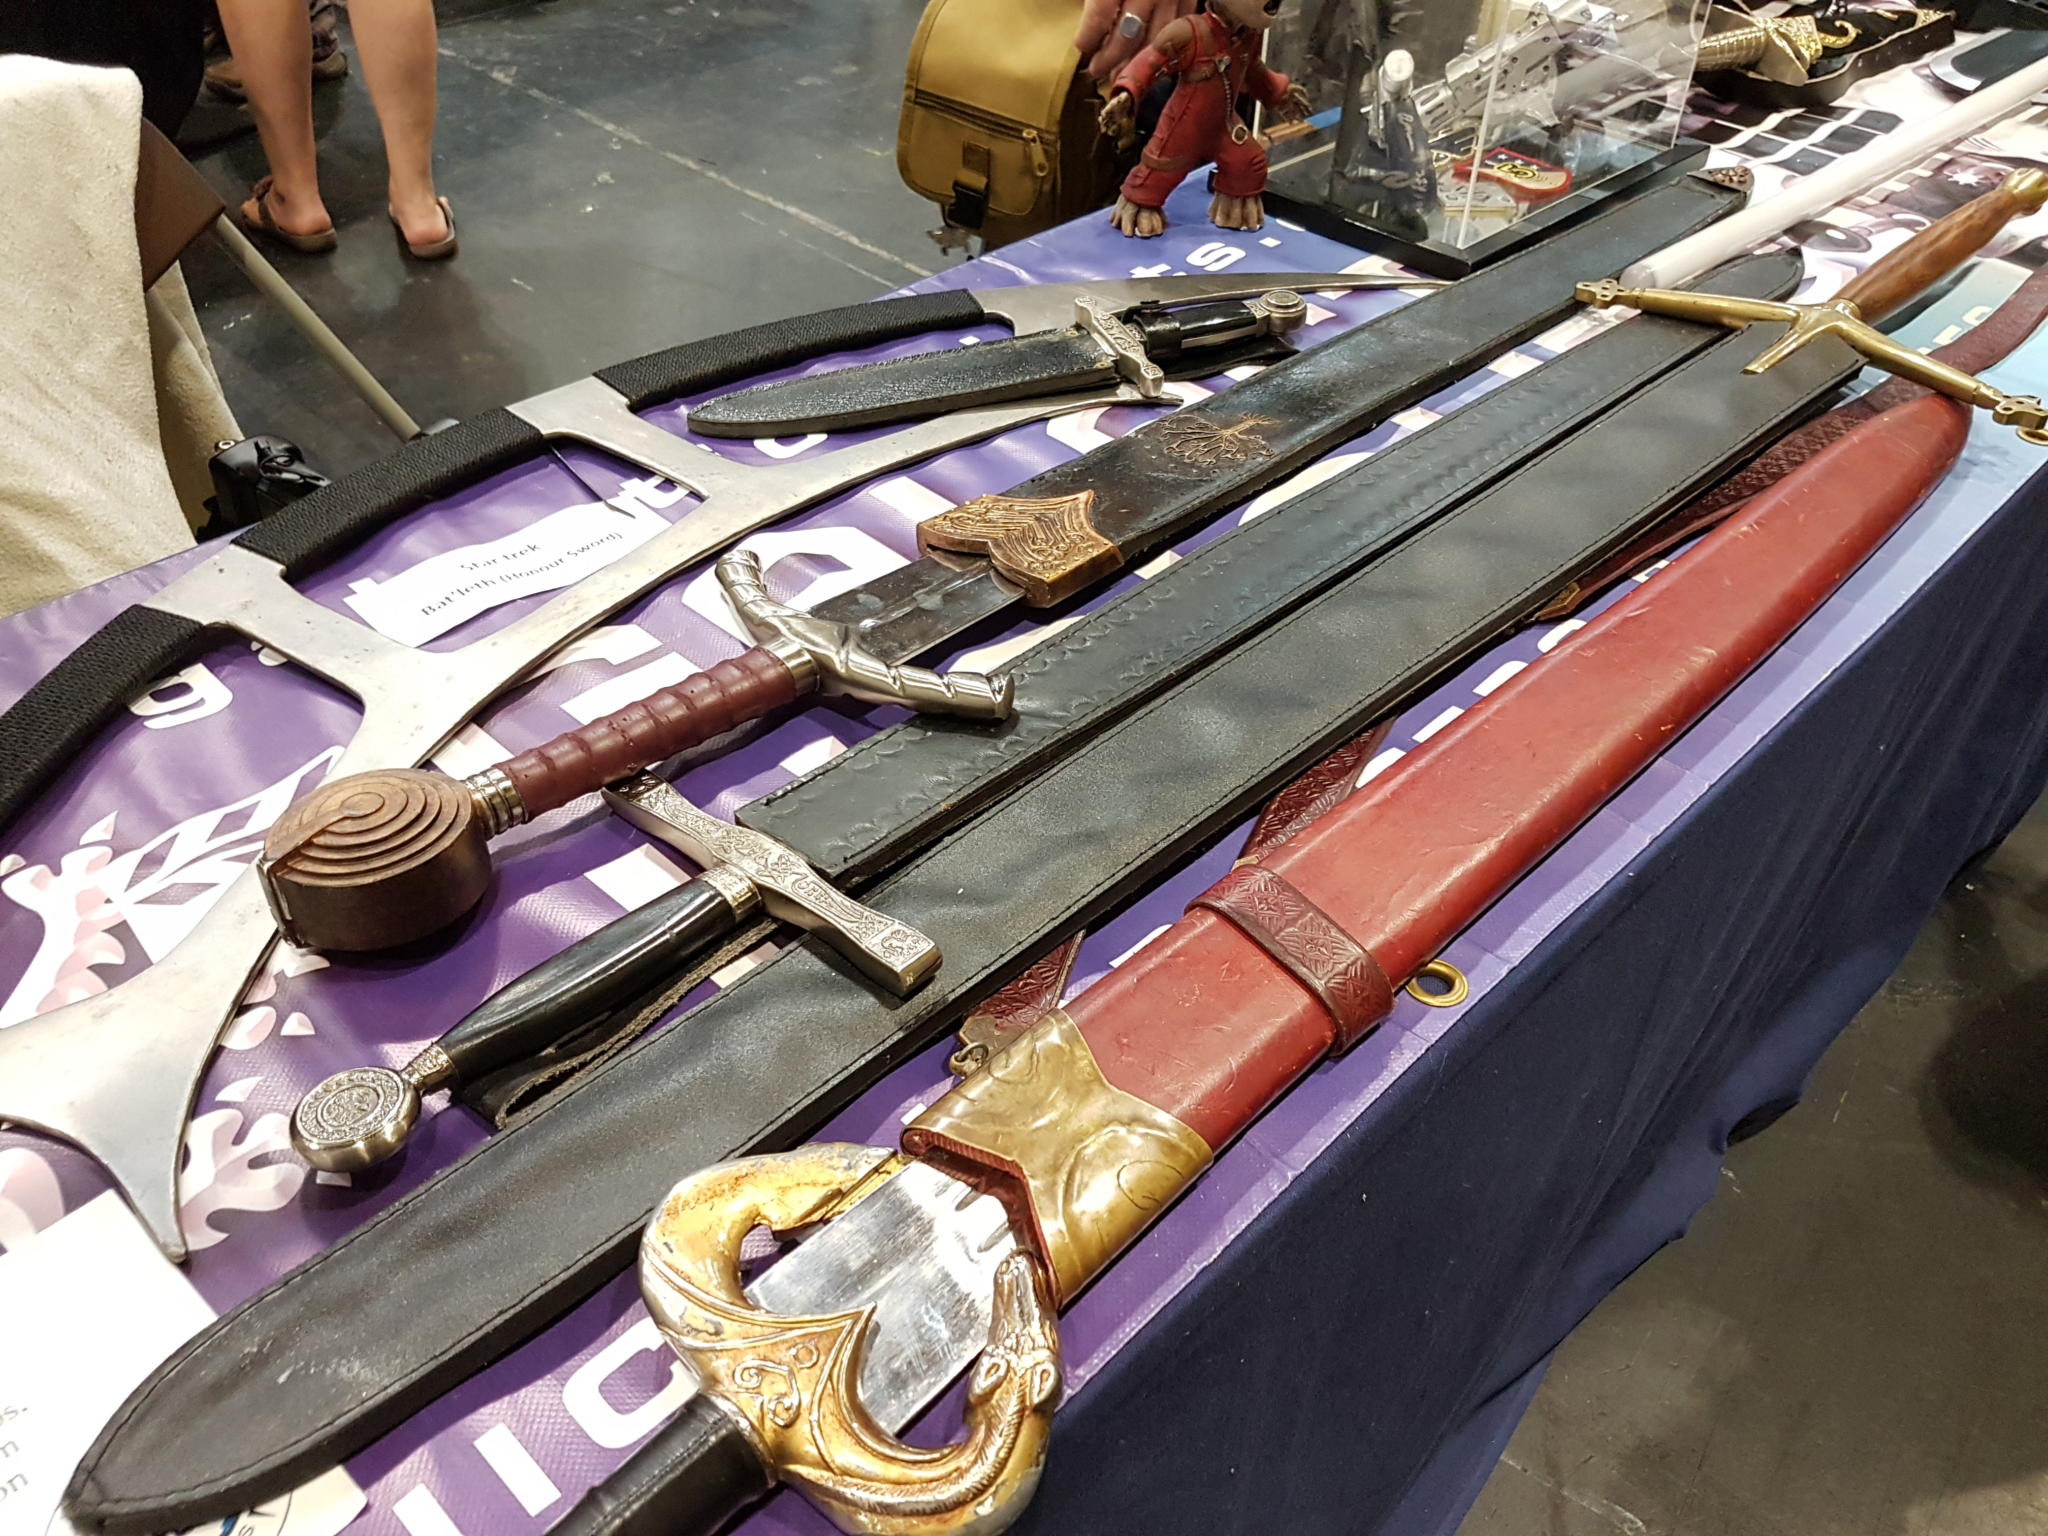 Some swords from UKGE